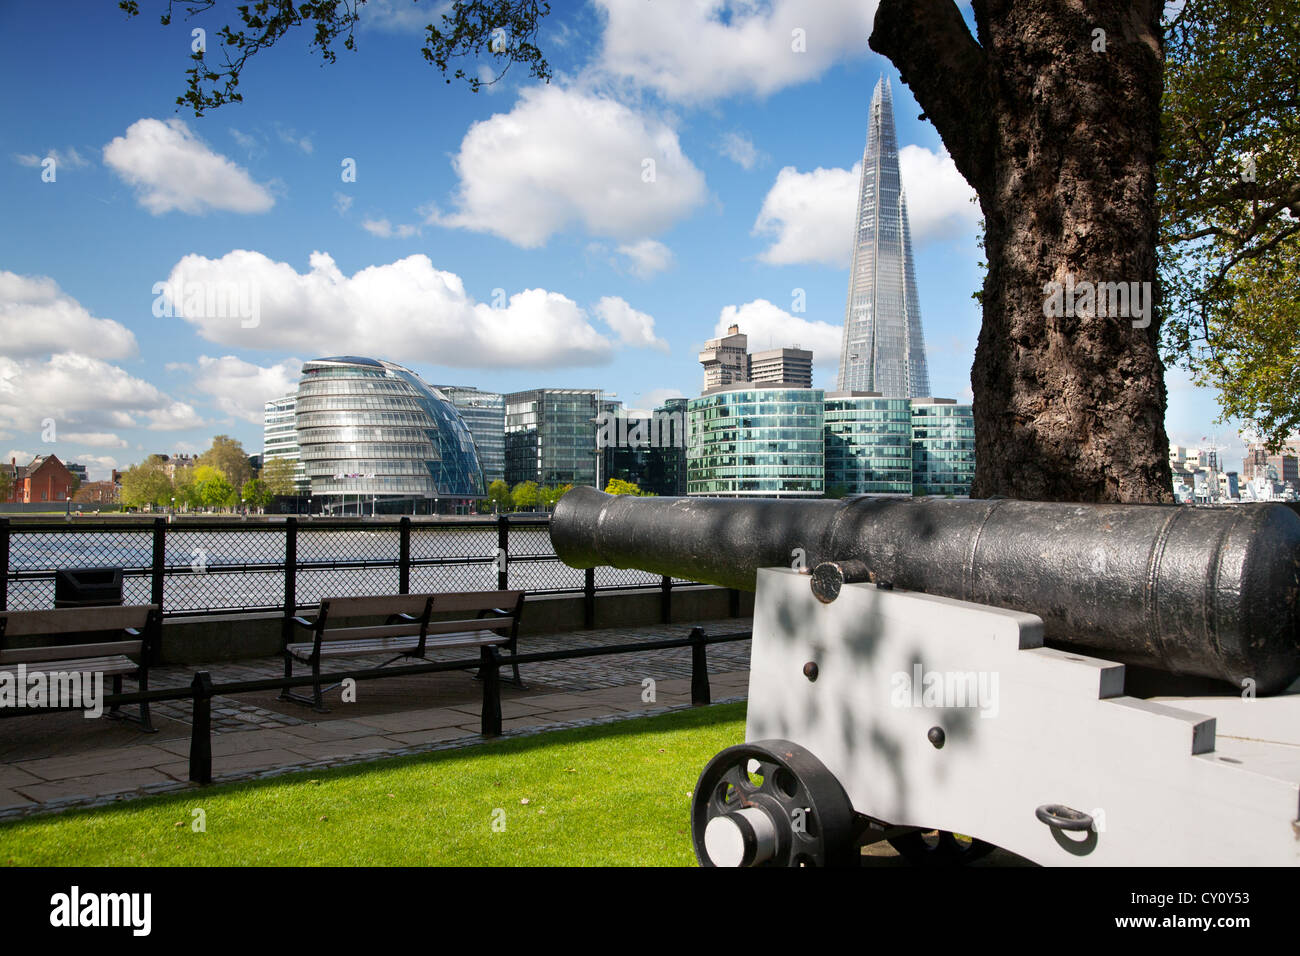 England. London. Canon by the River Thames. City Hall and the Shard building in the background. - Stock Image